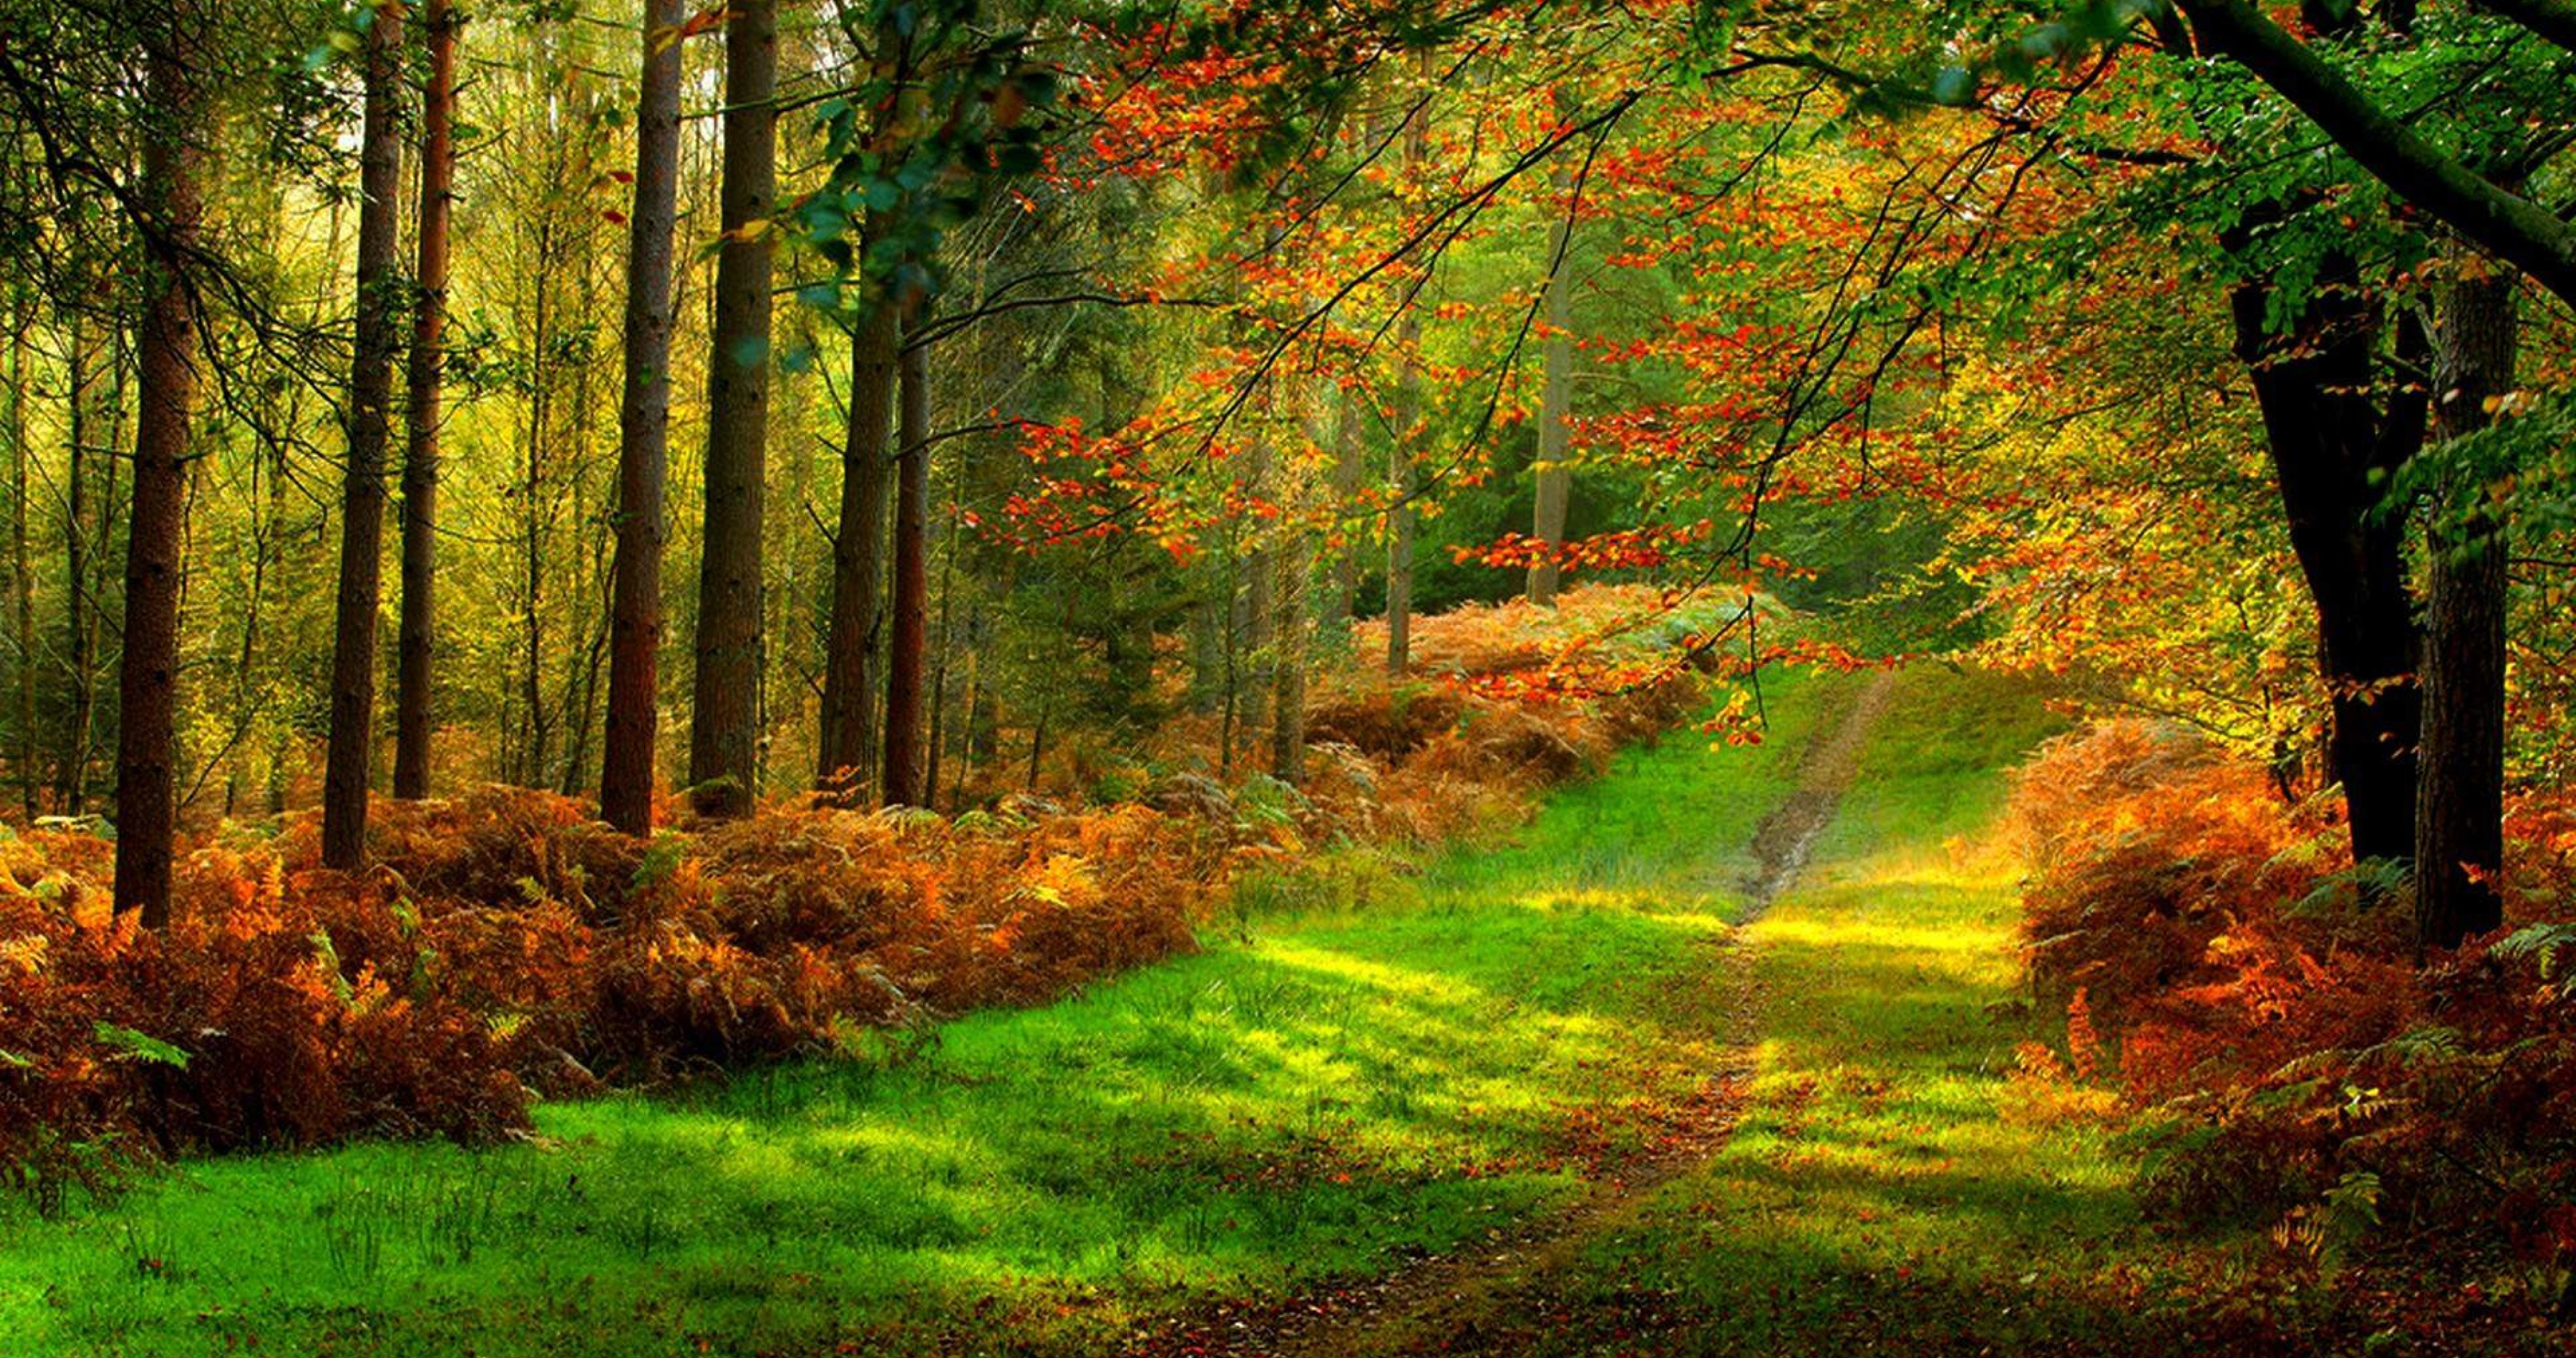 Forest 4k Quality Iphone Wallpaper: Forest Road Colorful 4k Ultra Hd Wallpaper » High Quality